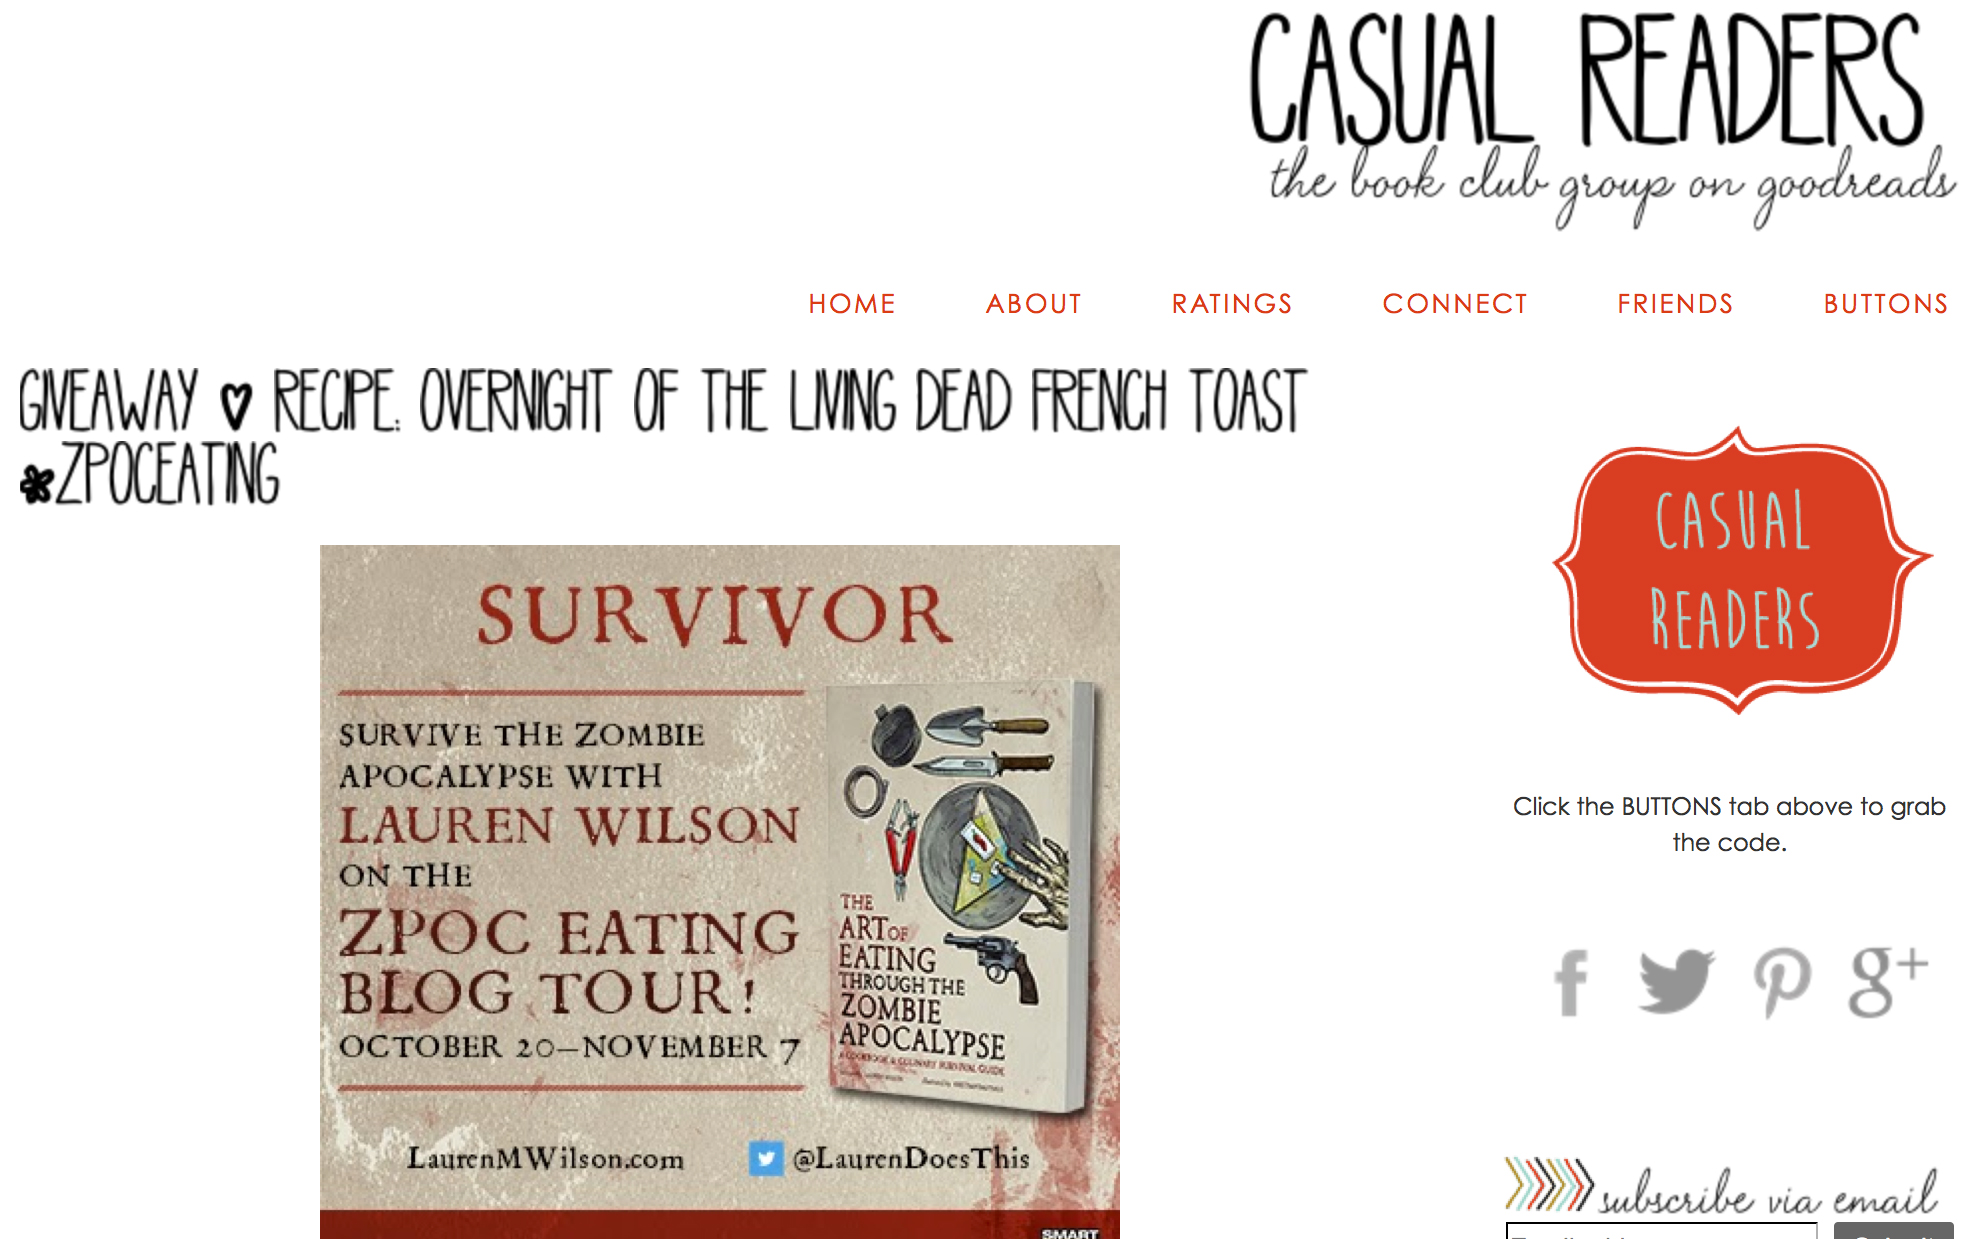 The Art of Eating Through the Zombie Apocalypse giveaway on Casual Readers!